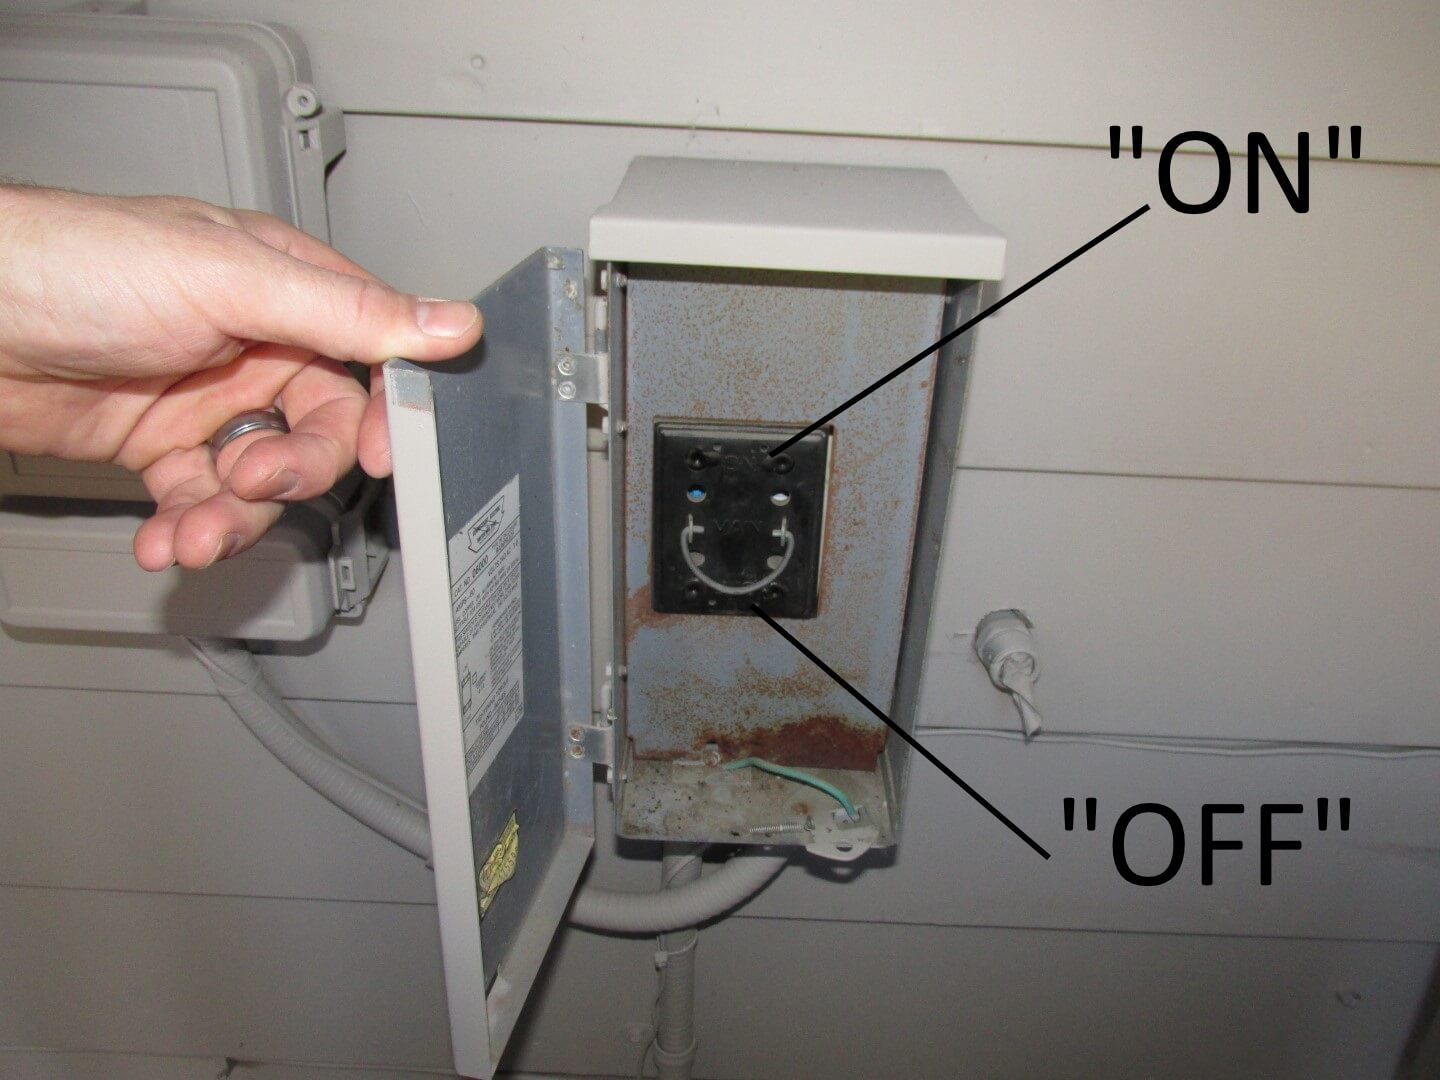 AC Pullout Block on and off how to inspect your own house, part 9 the air conditioner fuse box pull out at gsmx.co